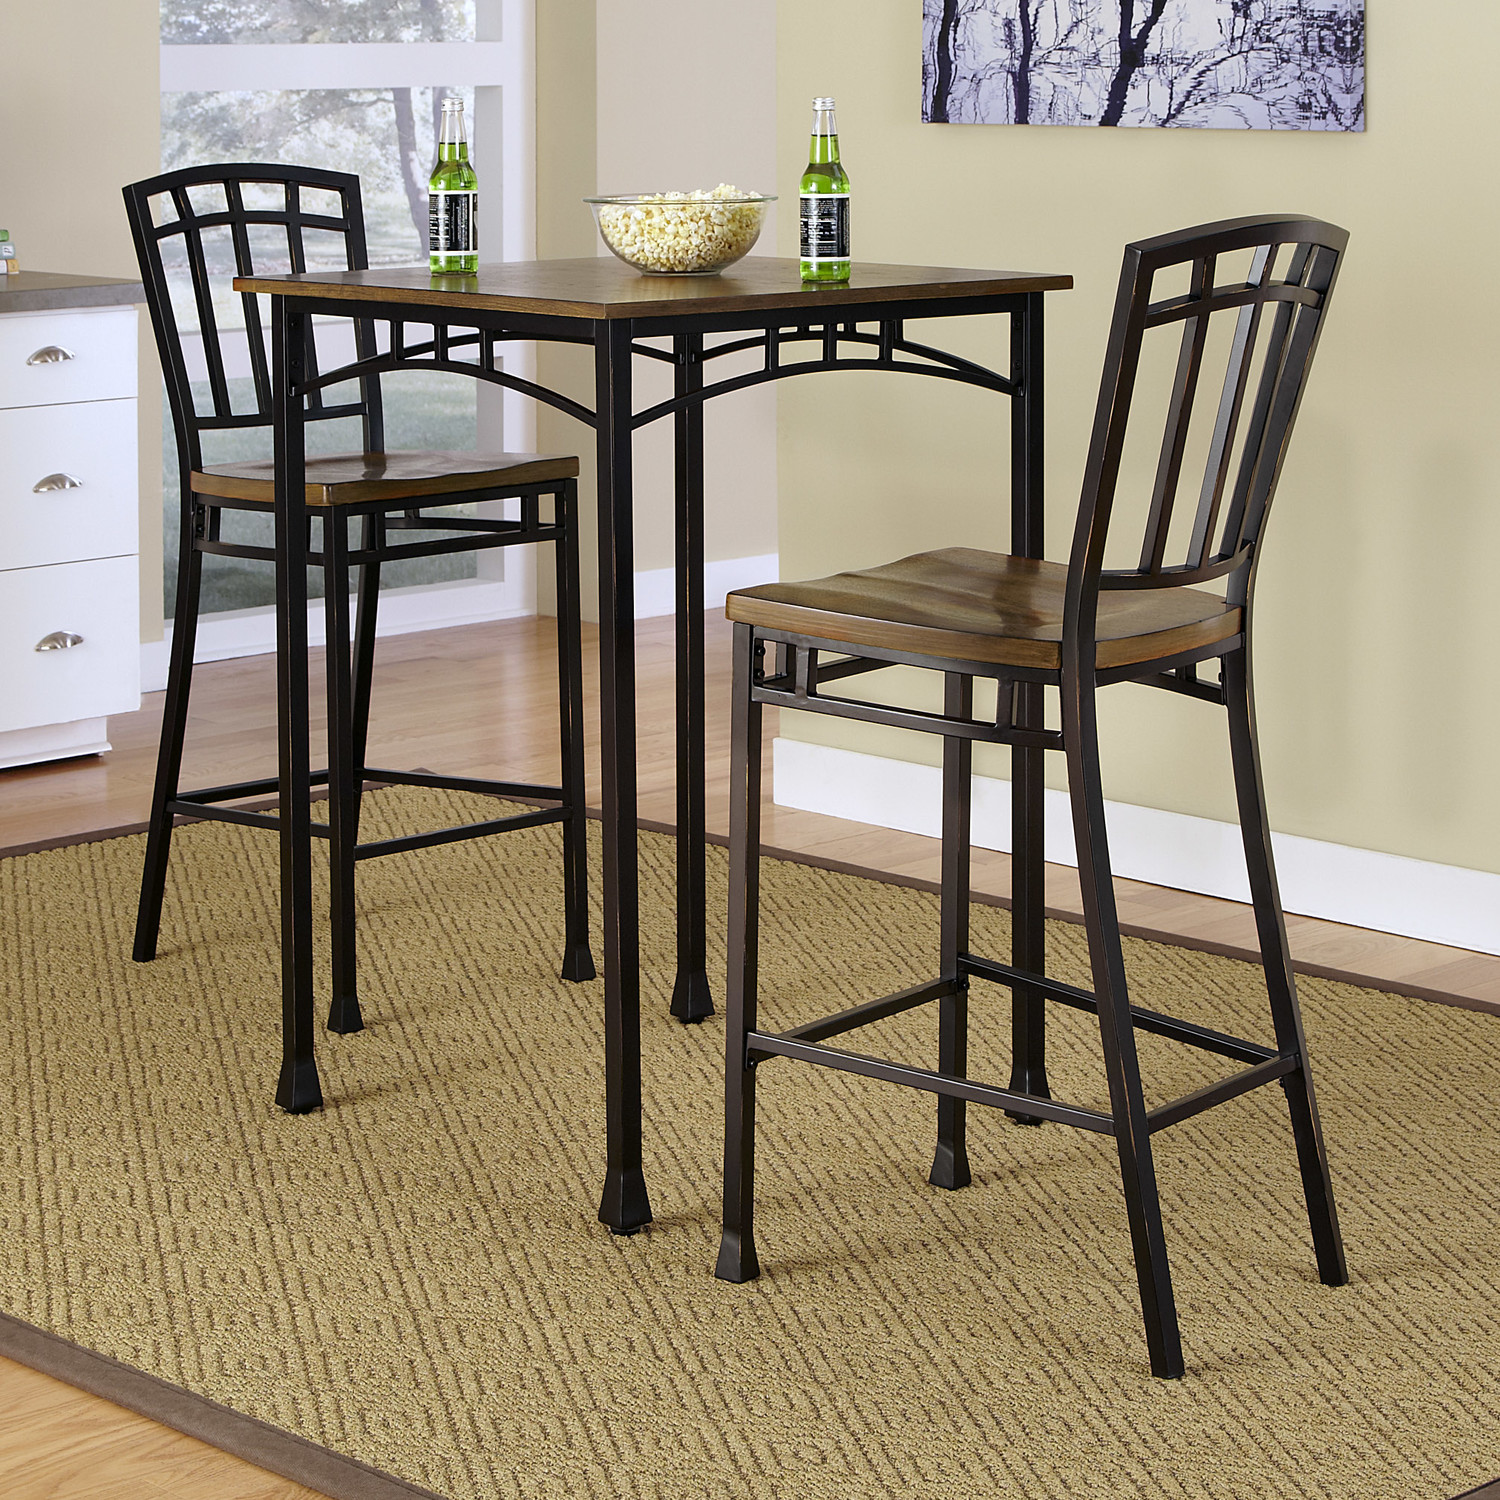 From Classic And Simple To Modern Style Of Small Pub Table & Small Pub Table Sets - Castrophotos